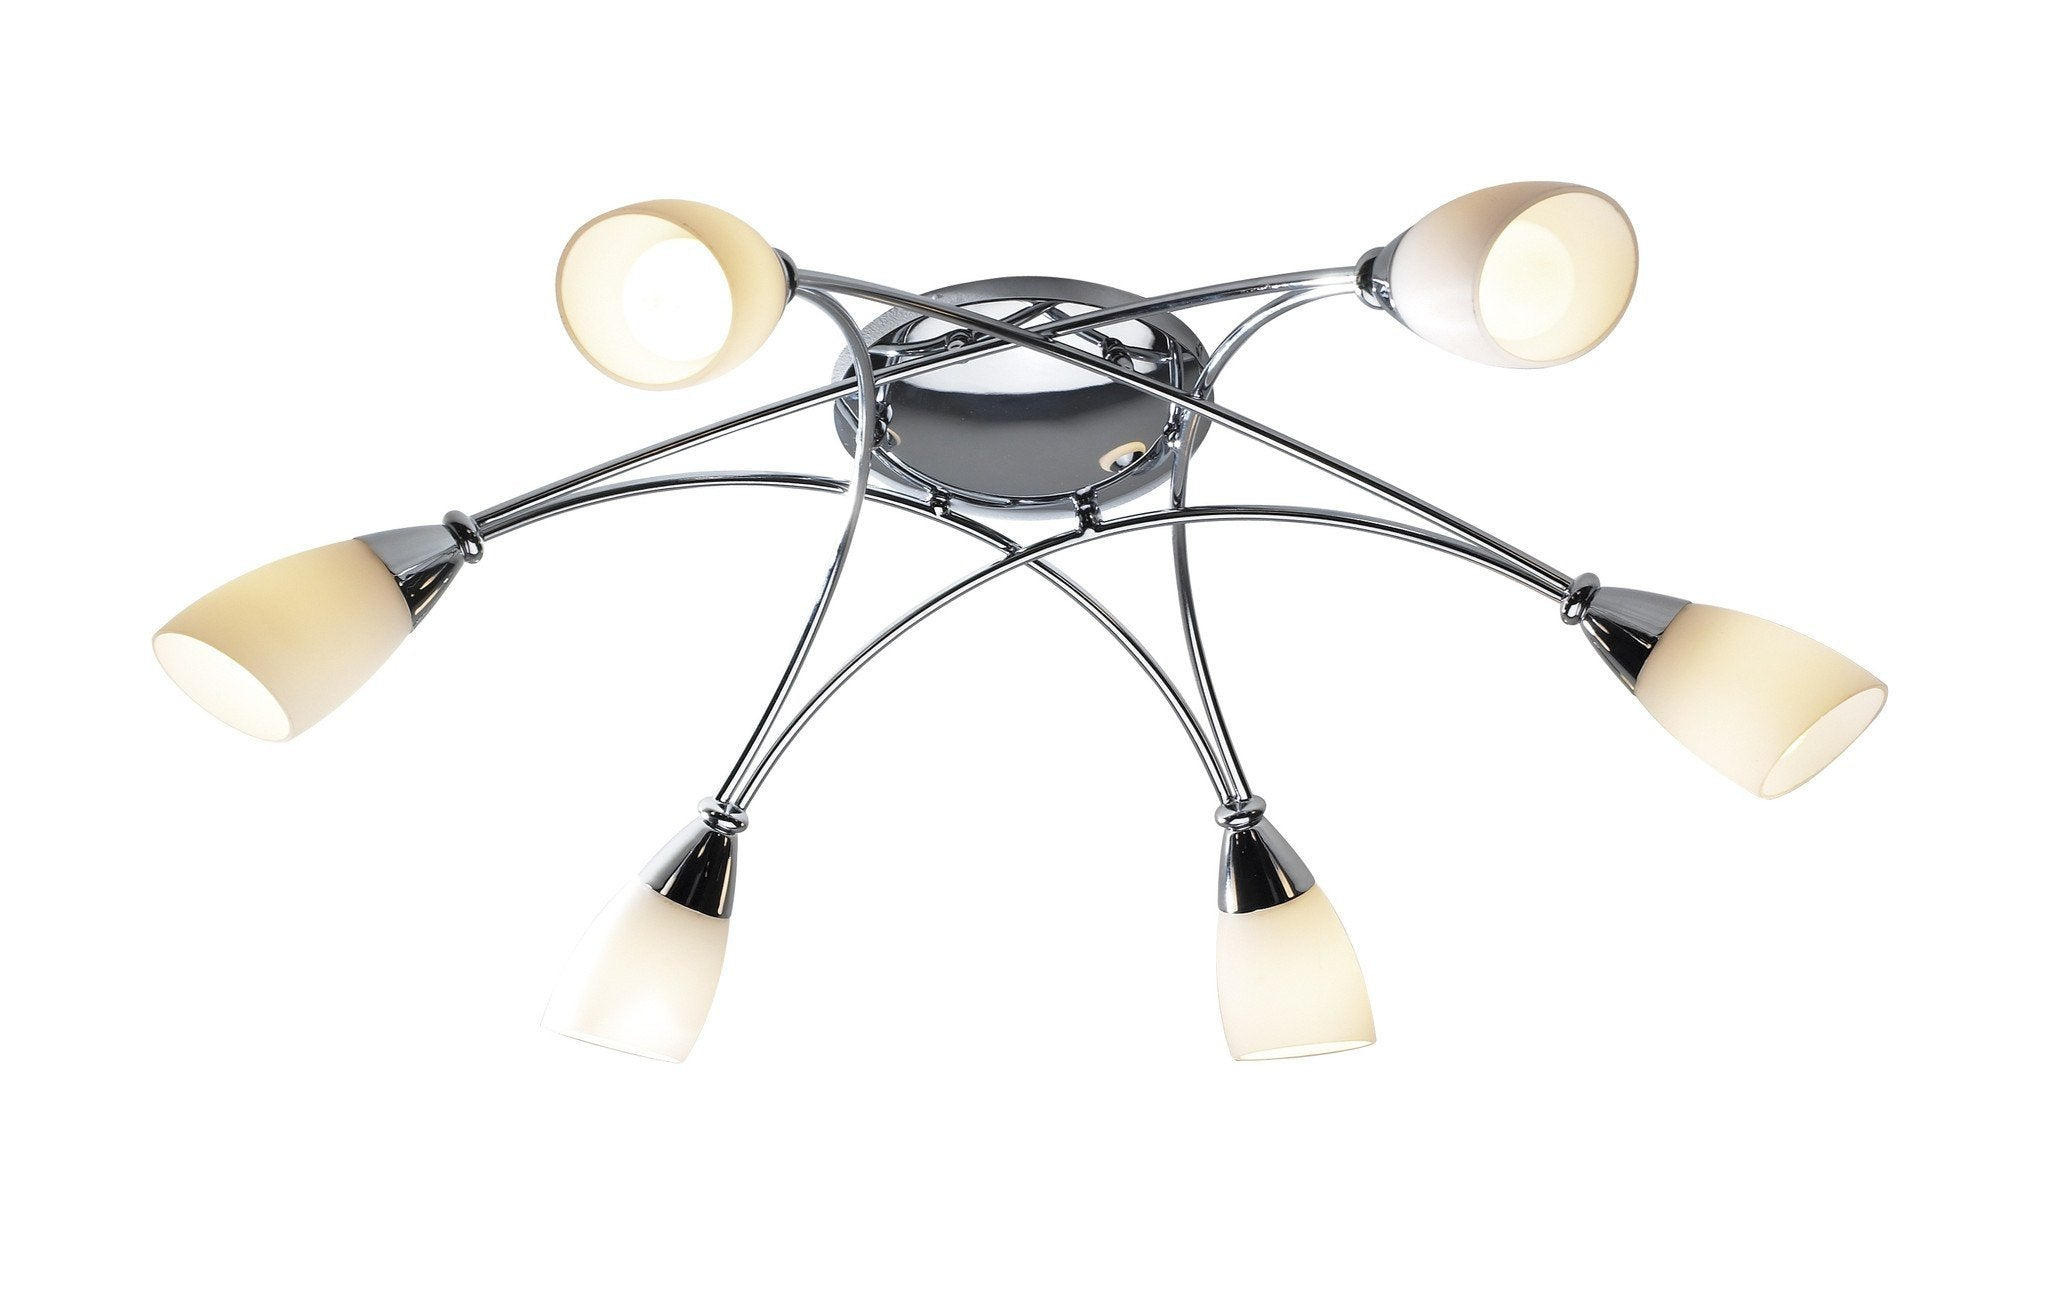 Bureau Chrome 6 Lamp Ceiling Light - London Lighting - 1